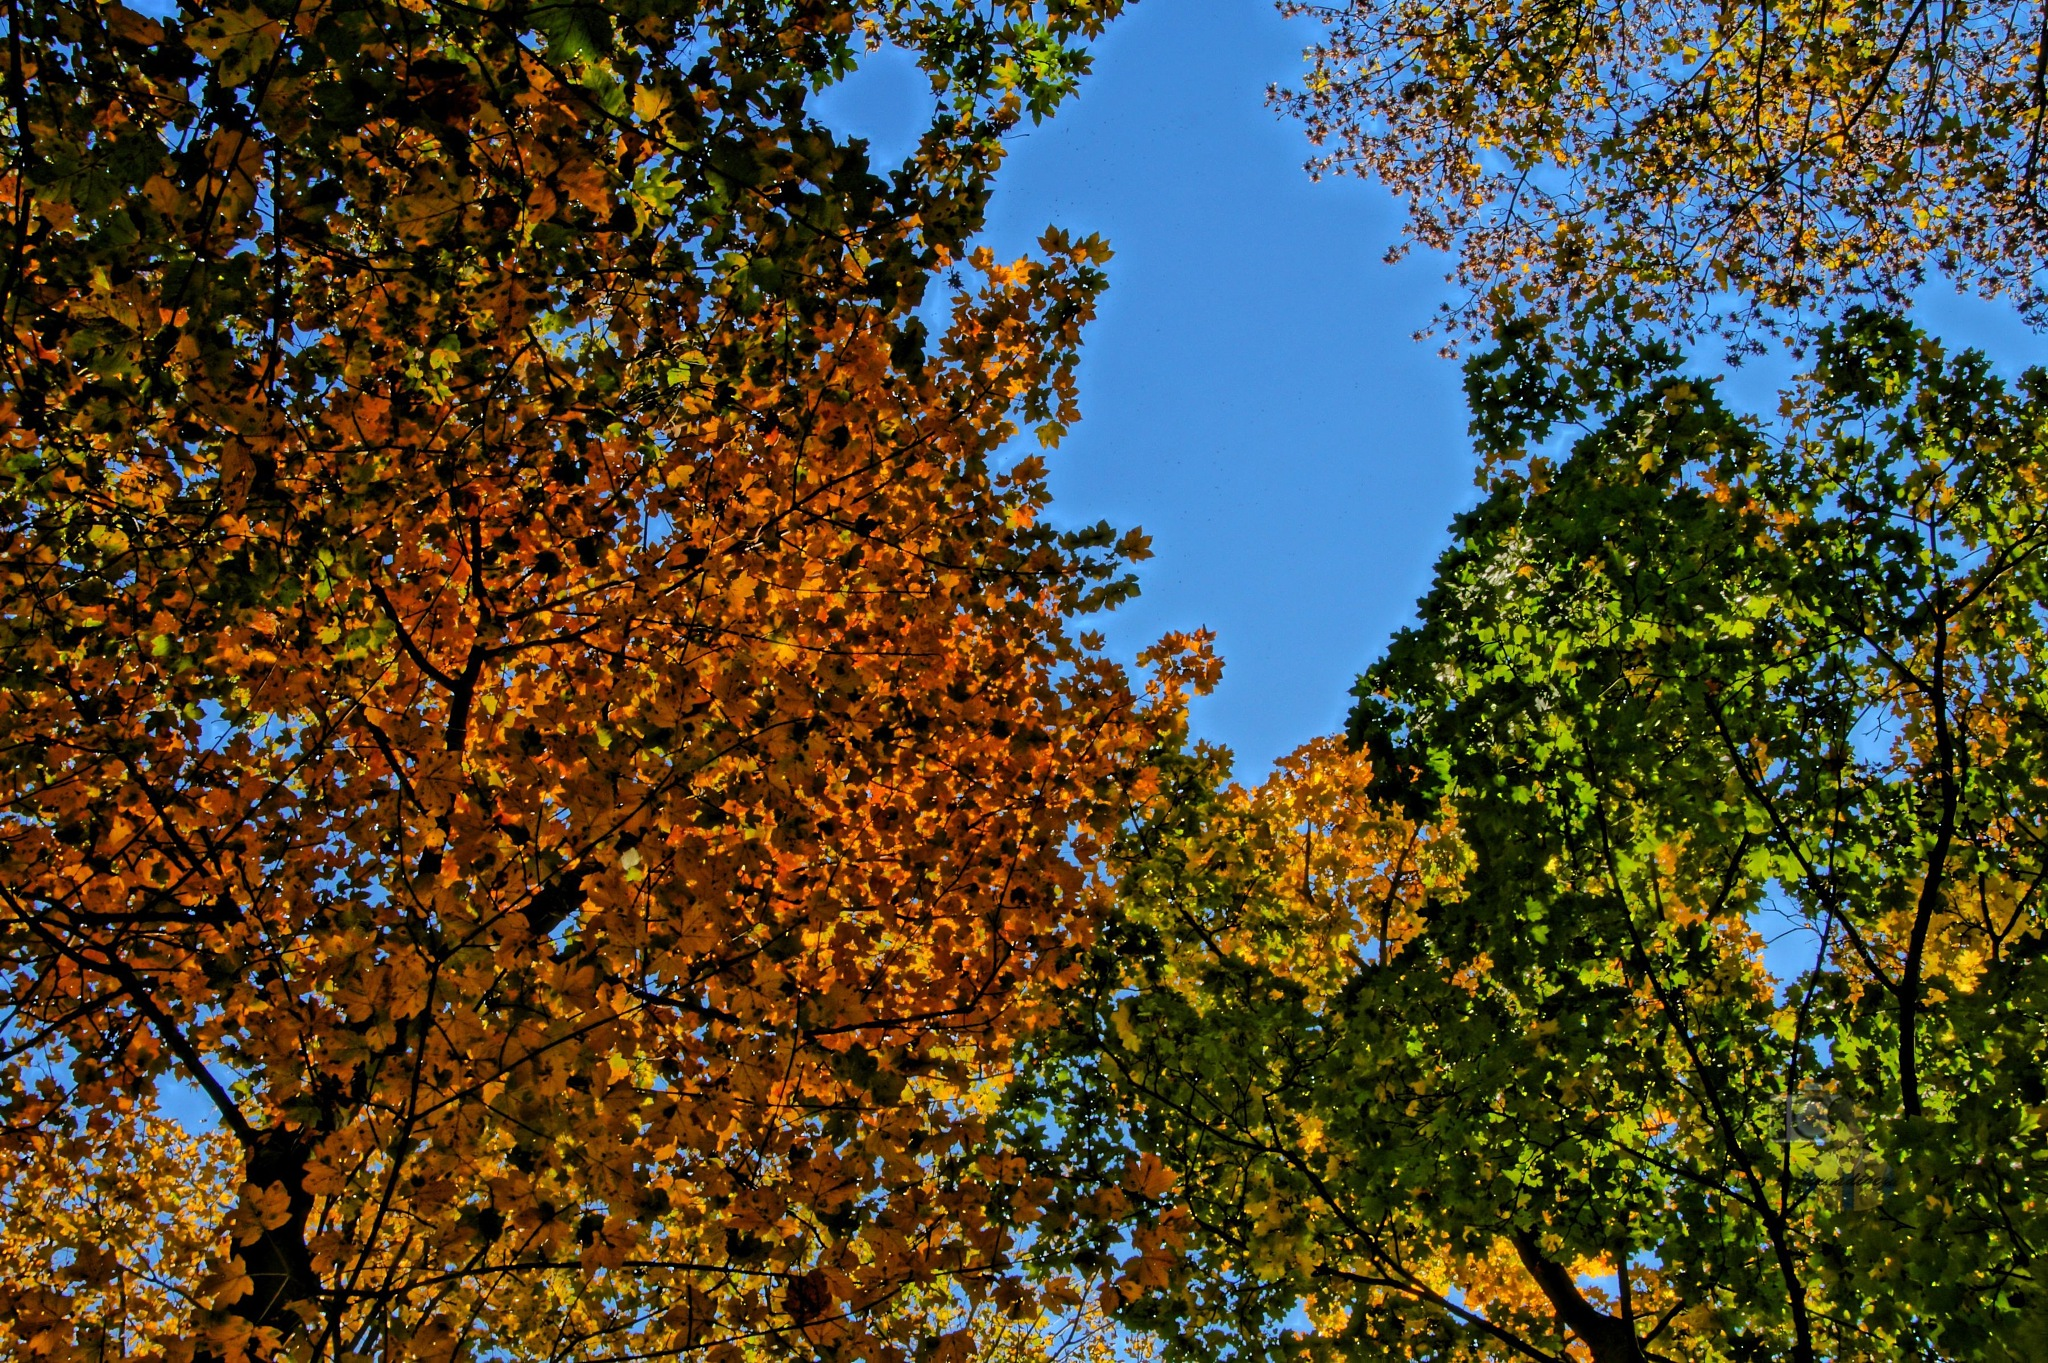 Oct.22, autumn forest HDR #3 by hunyadigeza